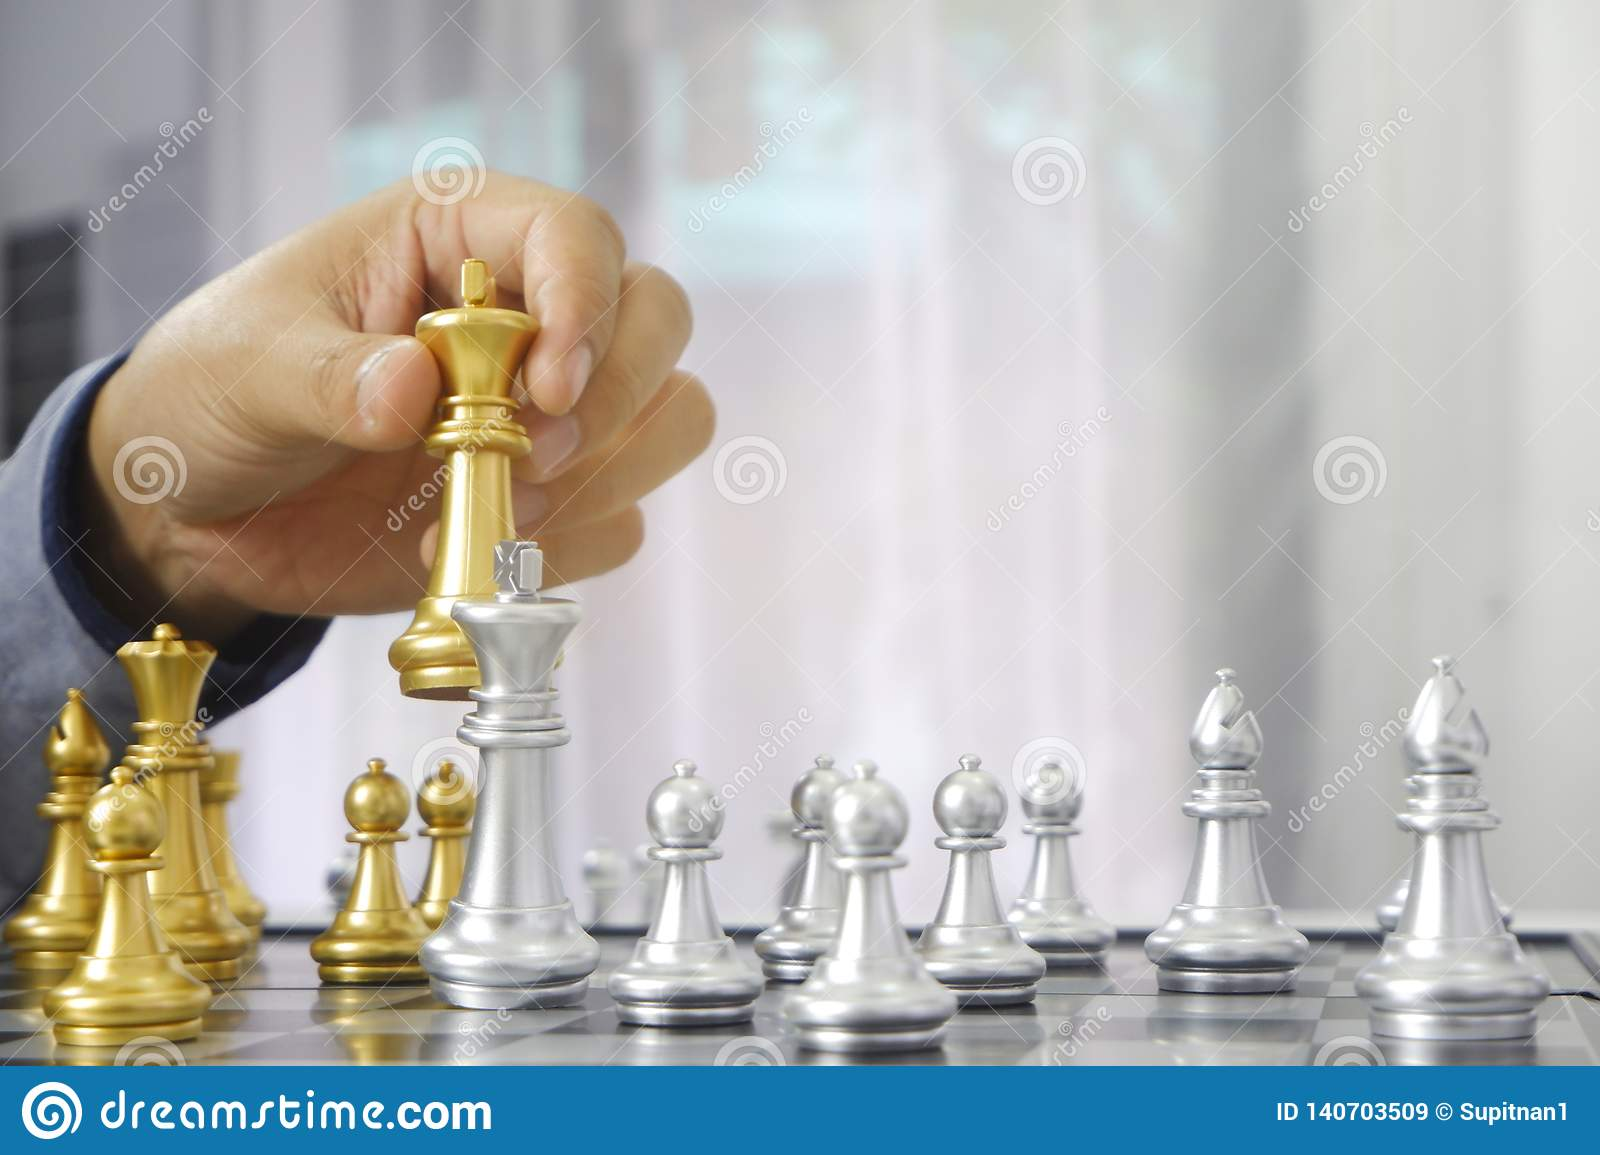 Businessman playing chess game; for business strategy, leadership and management concept